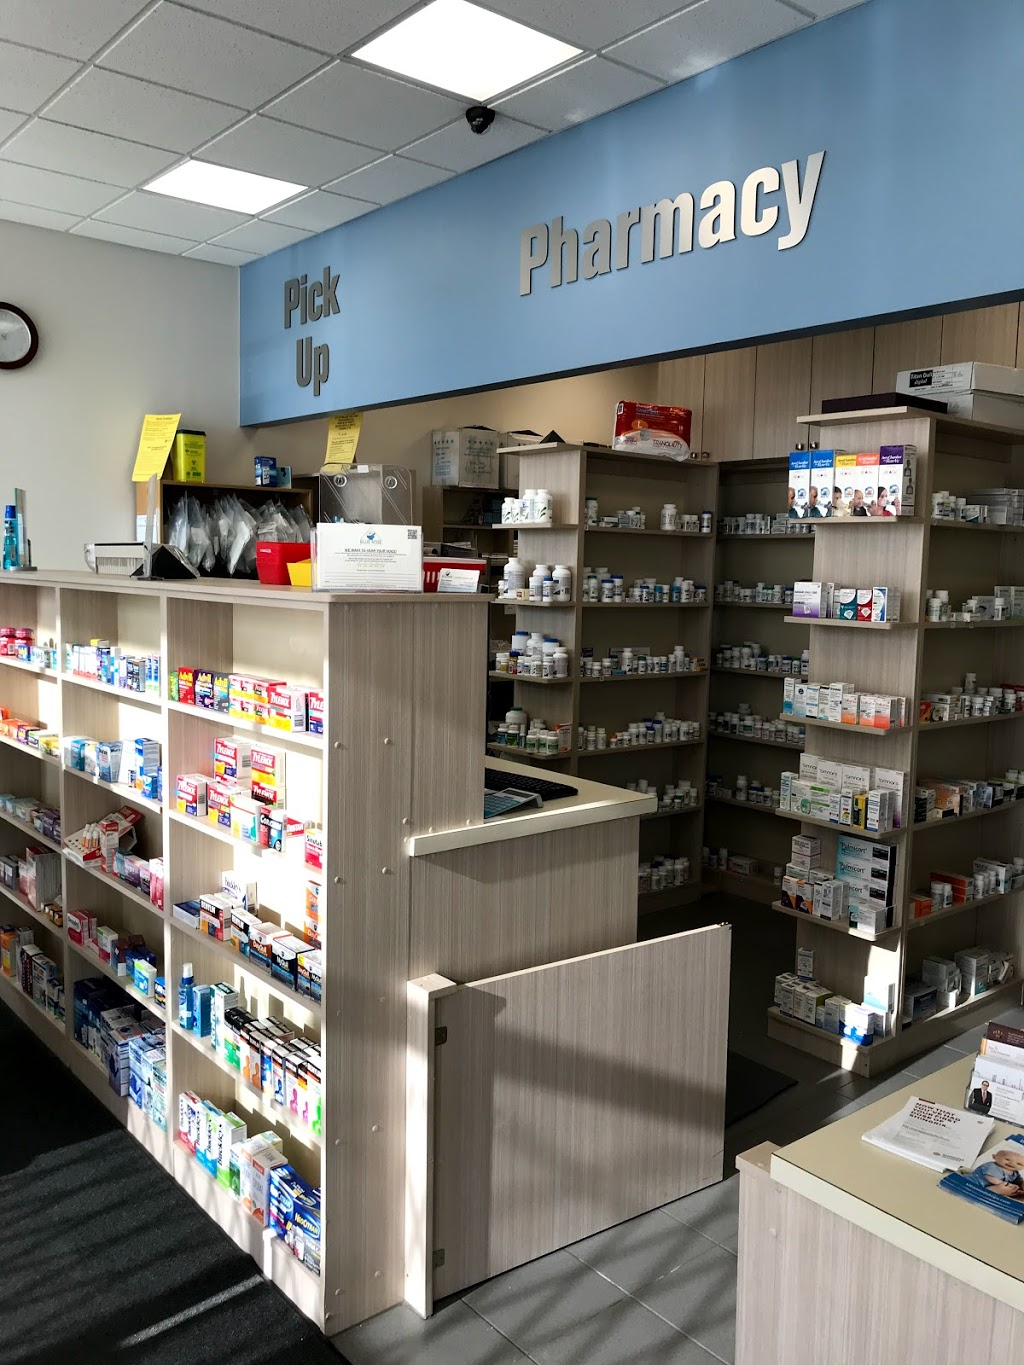 Blue Rose Compounding Pharmacy | health | 1910 Kennedy Rd #5, Scarborough, ON M1P 2L8, Canada | 4167549000 OR +1 416-754-9000